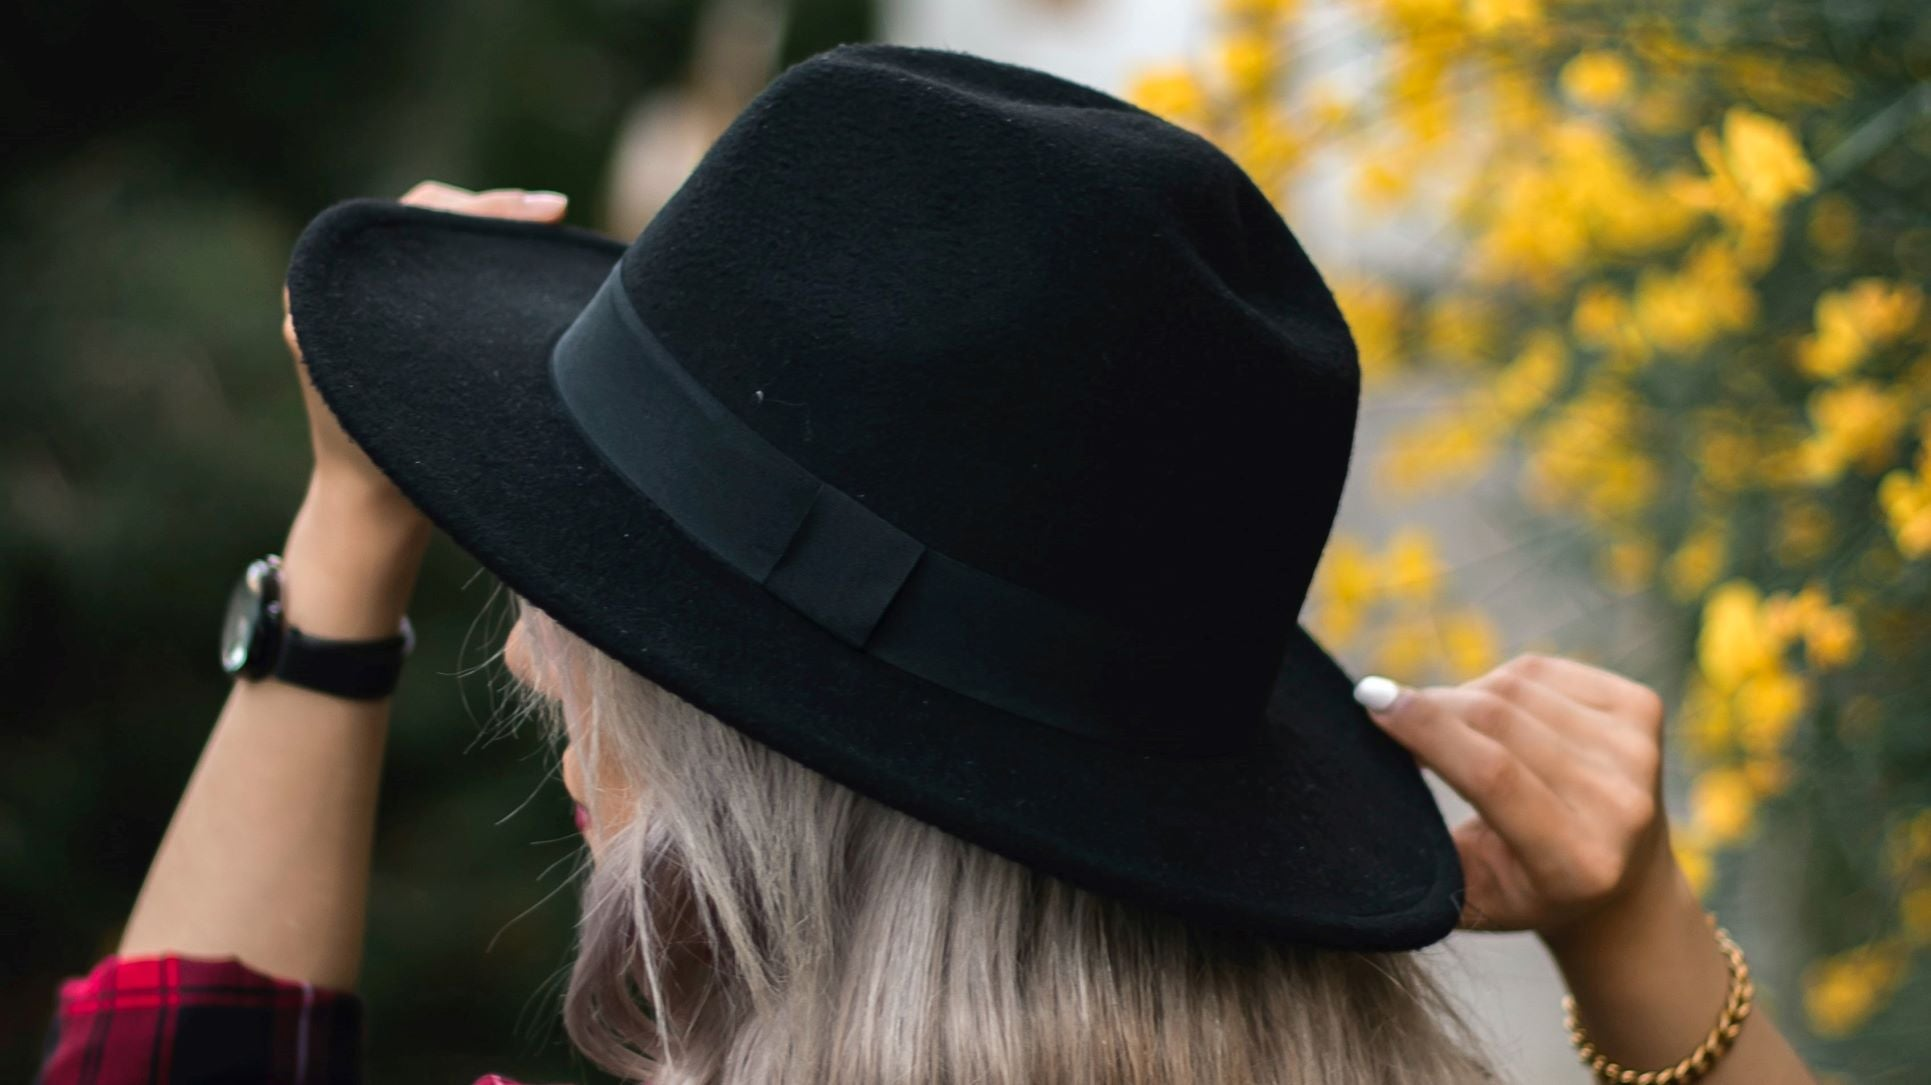 a woman wearing a fedora hat on suburb background